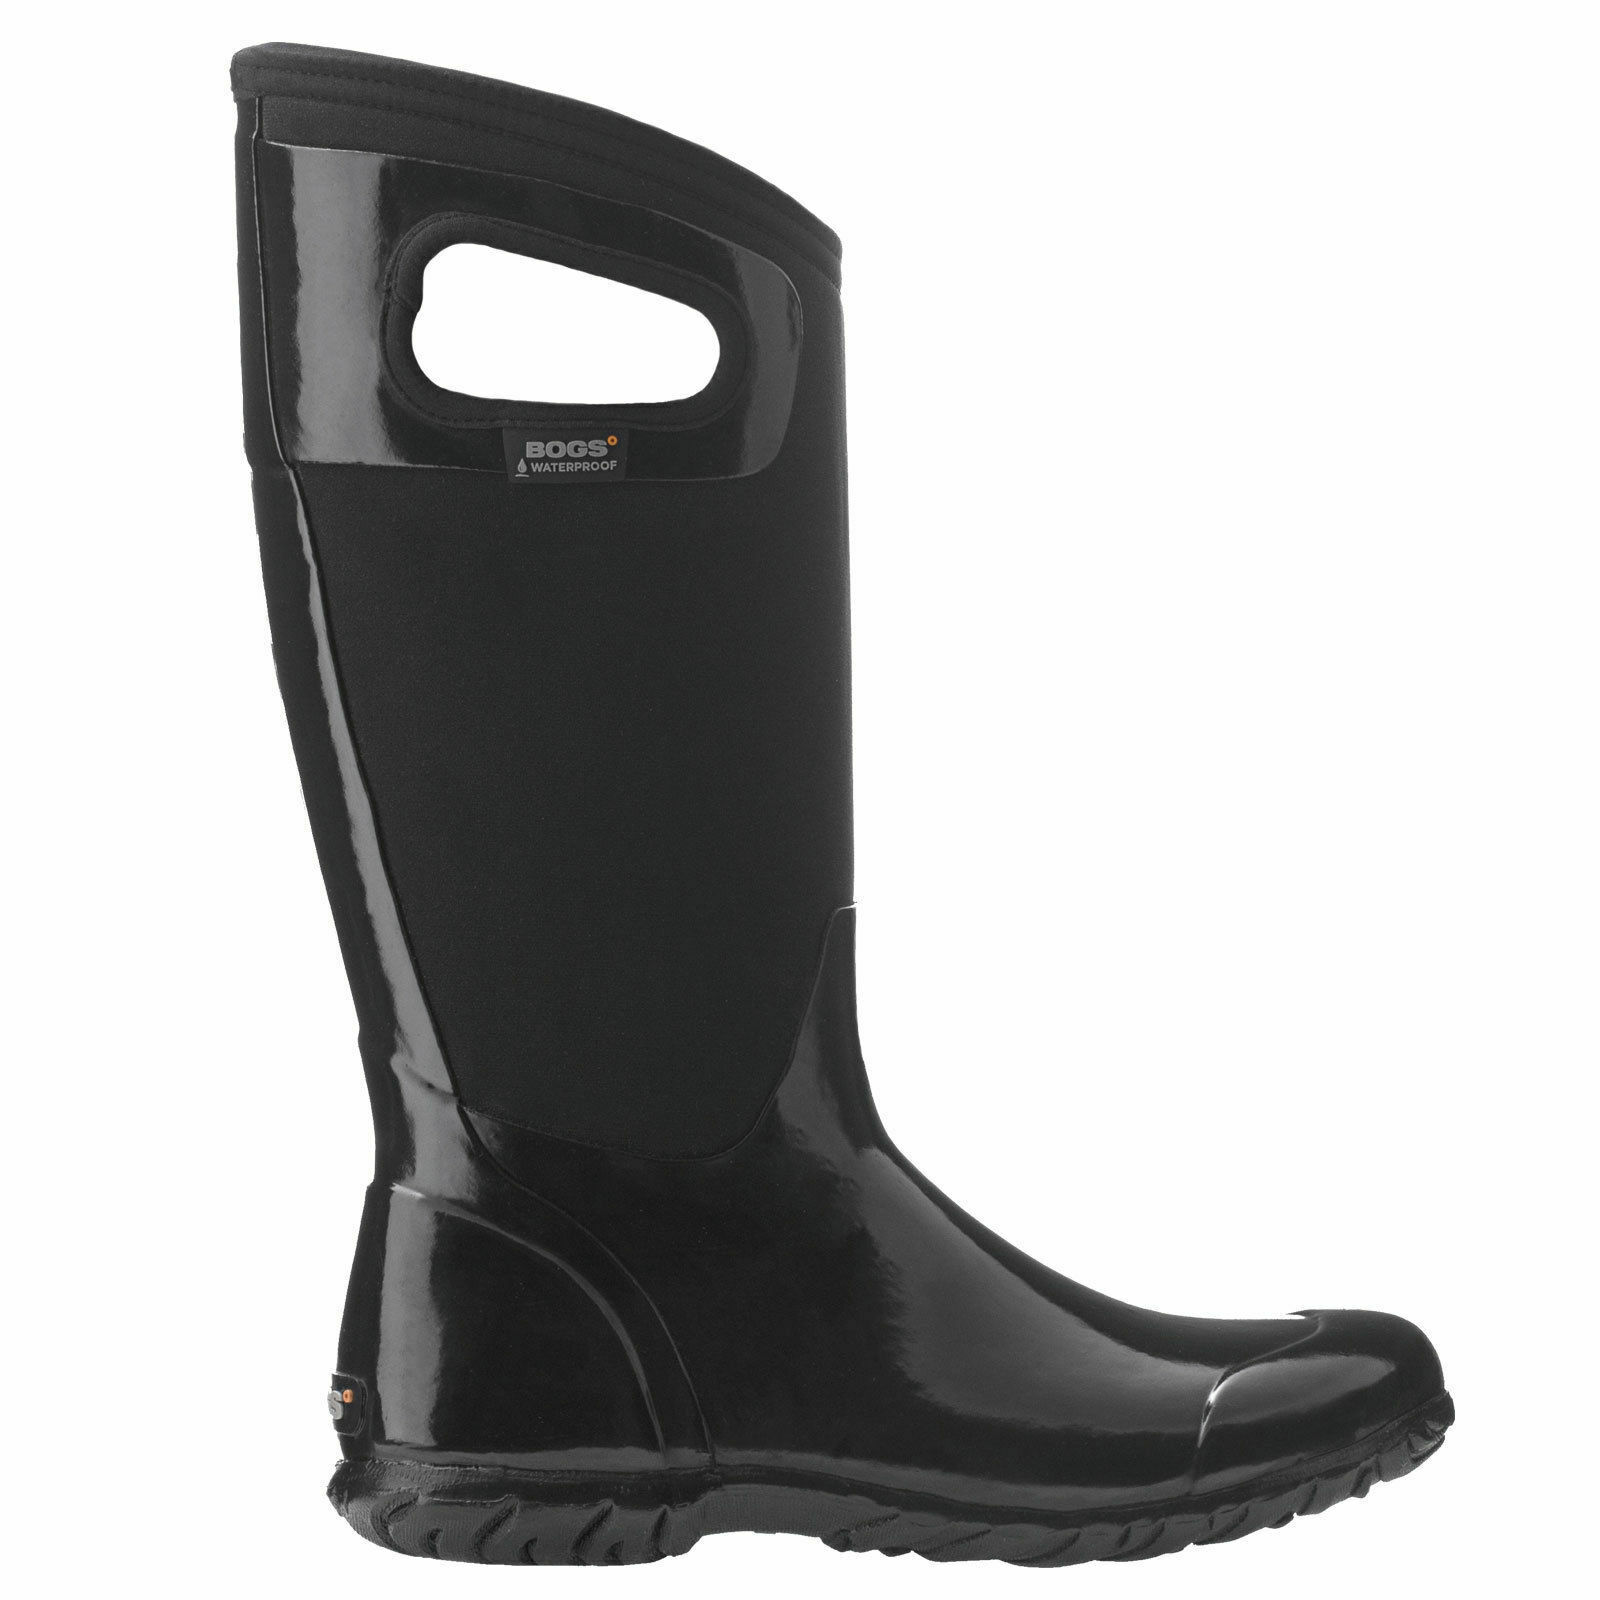 Bogs North Hampton Sólido Negro Cálido aislado Wellies UK 8 EU 42 LN49 64